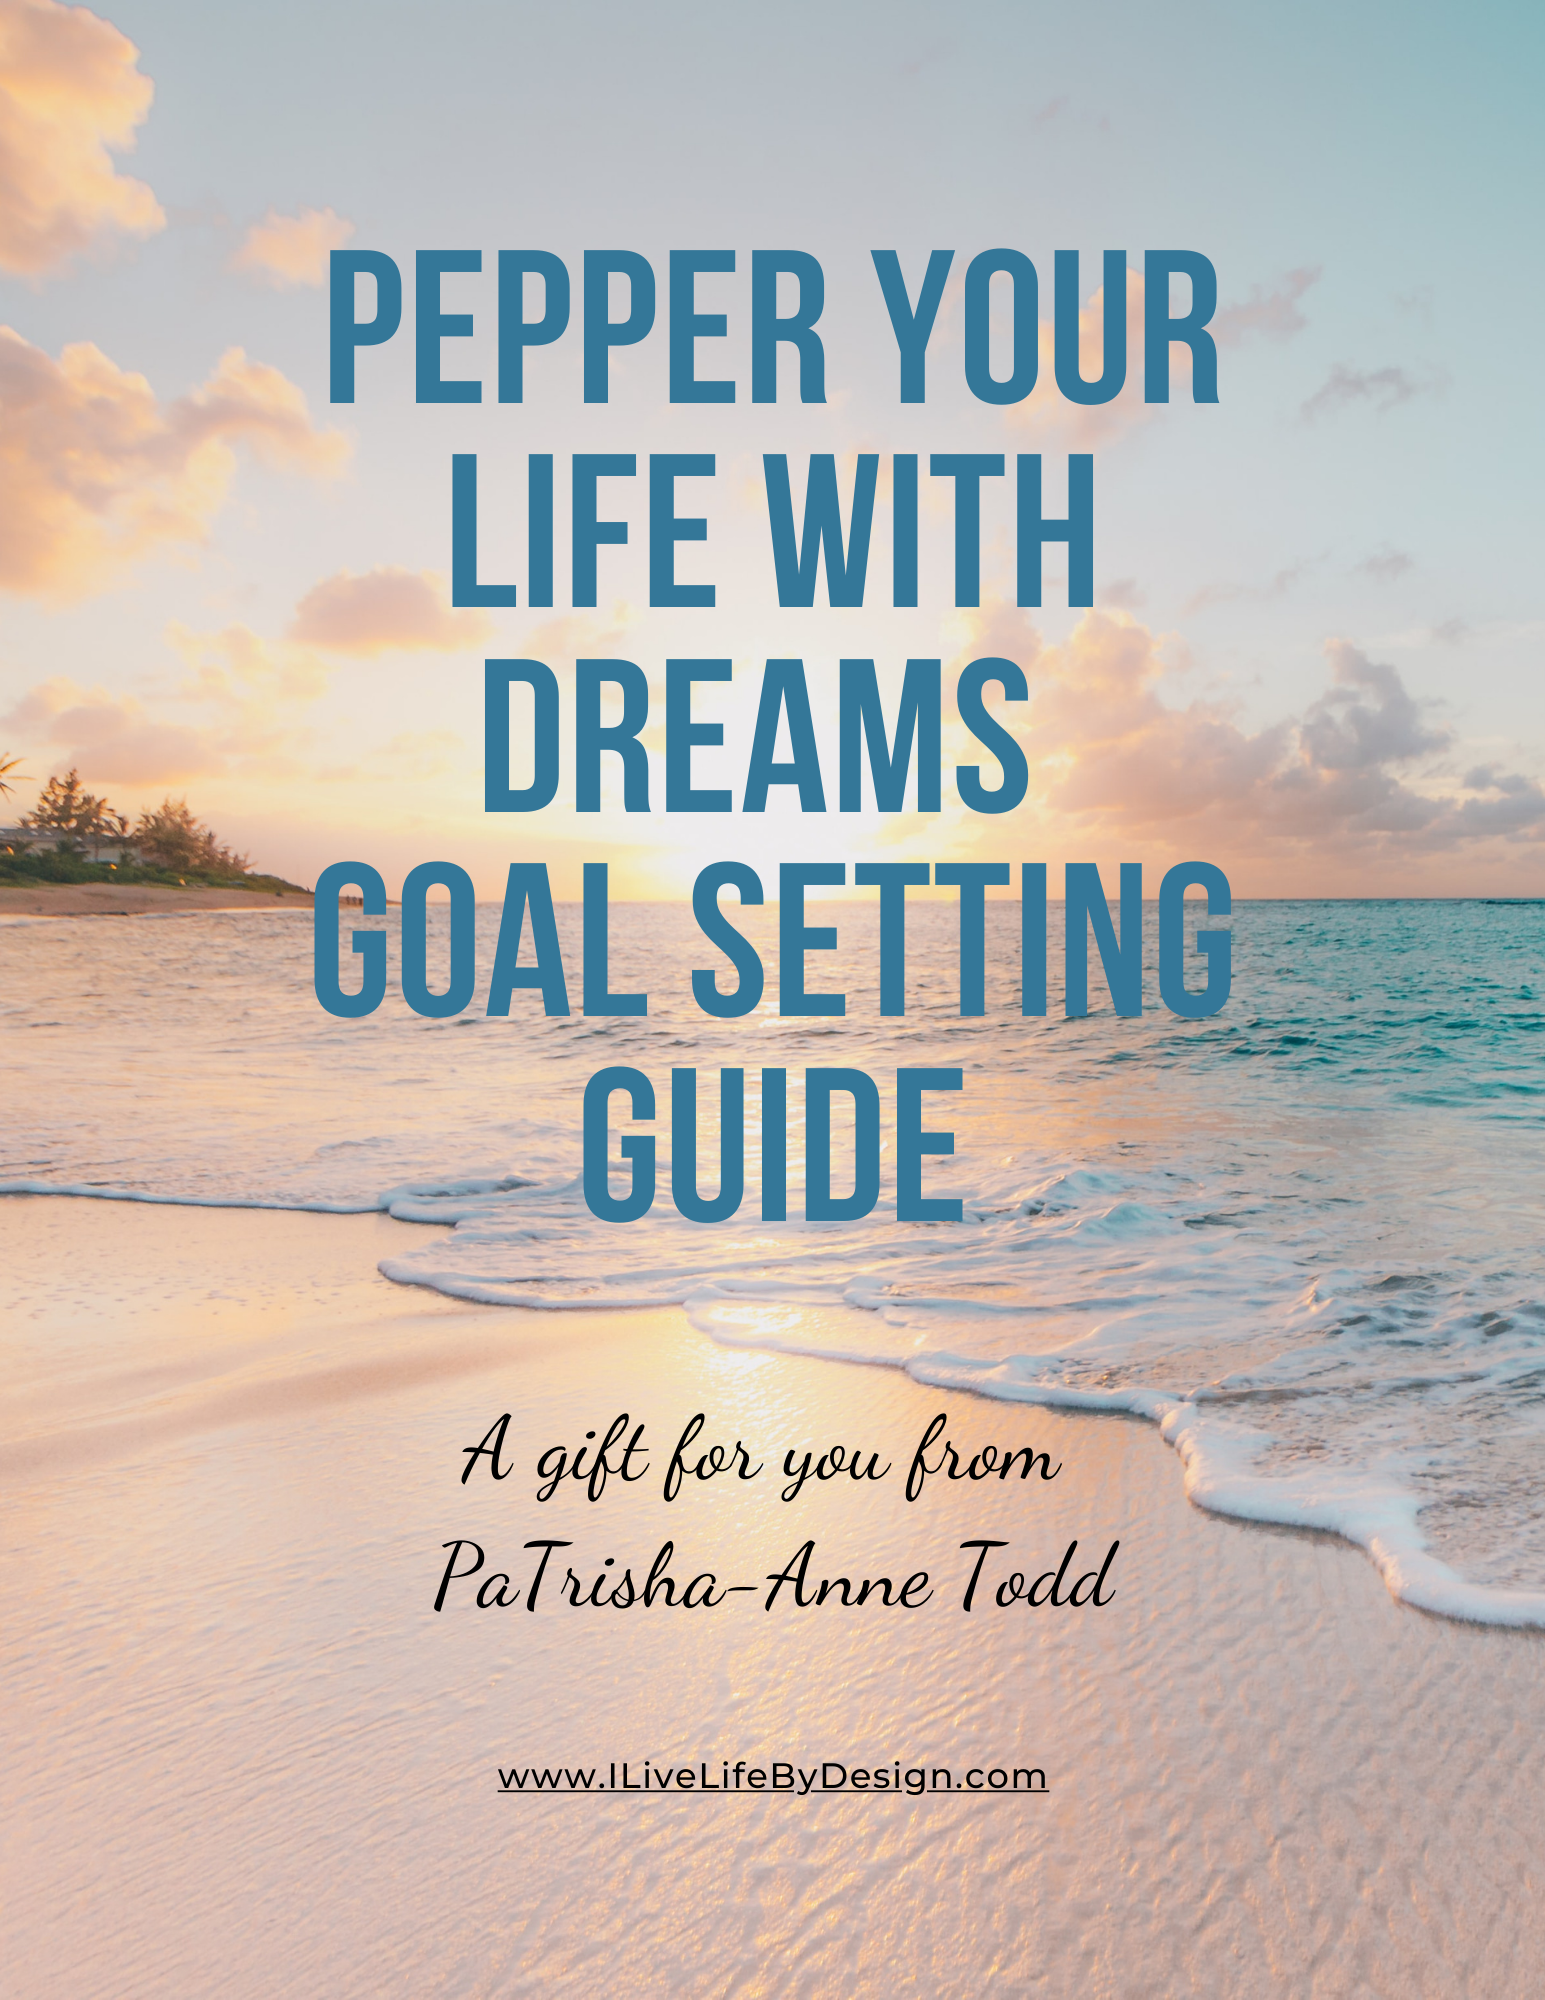 Pepper Your Life with Dreams a gift from PaTrisha-Anne Todd at www.CoachingLeadsToSuccess.com